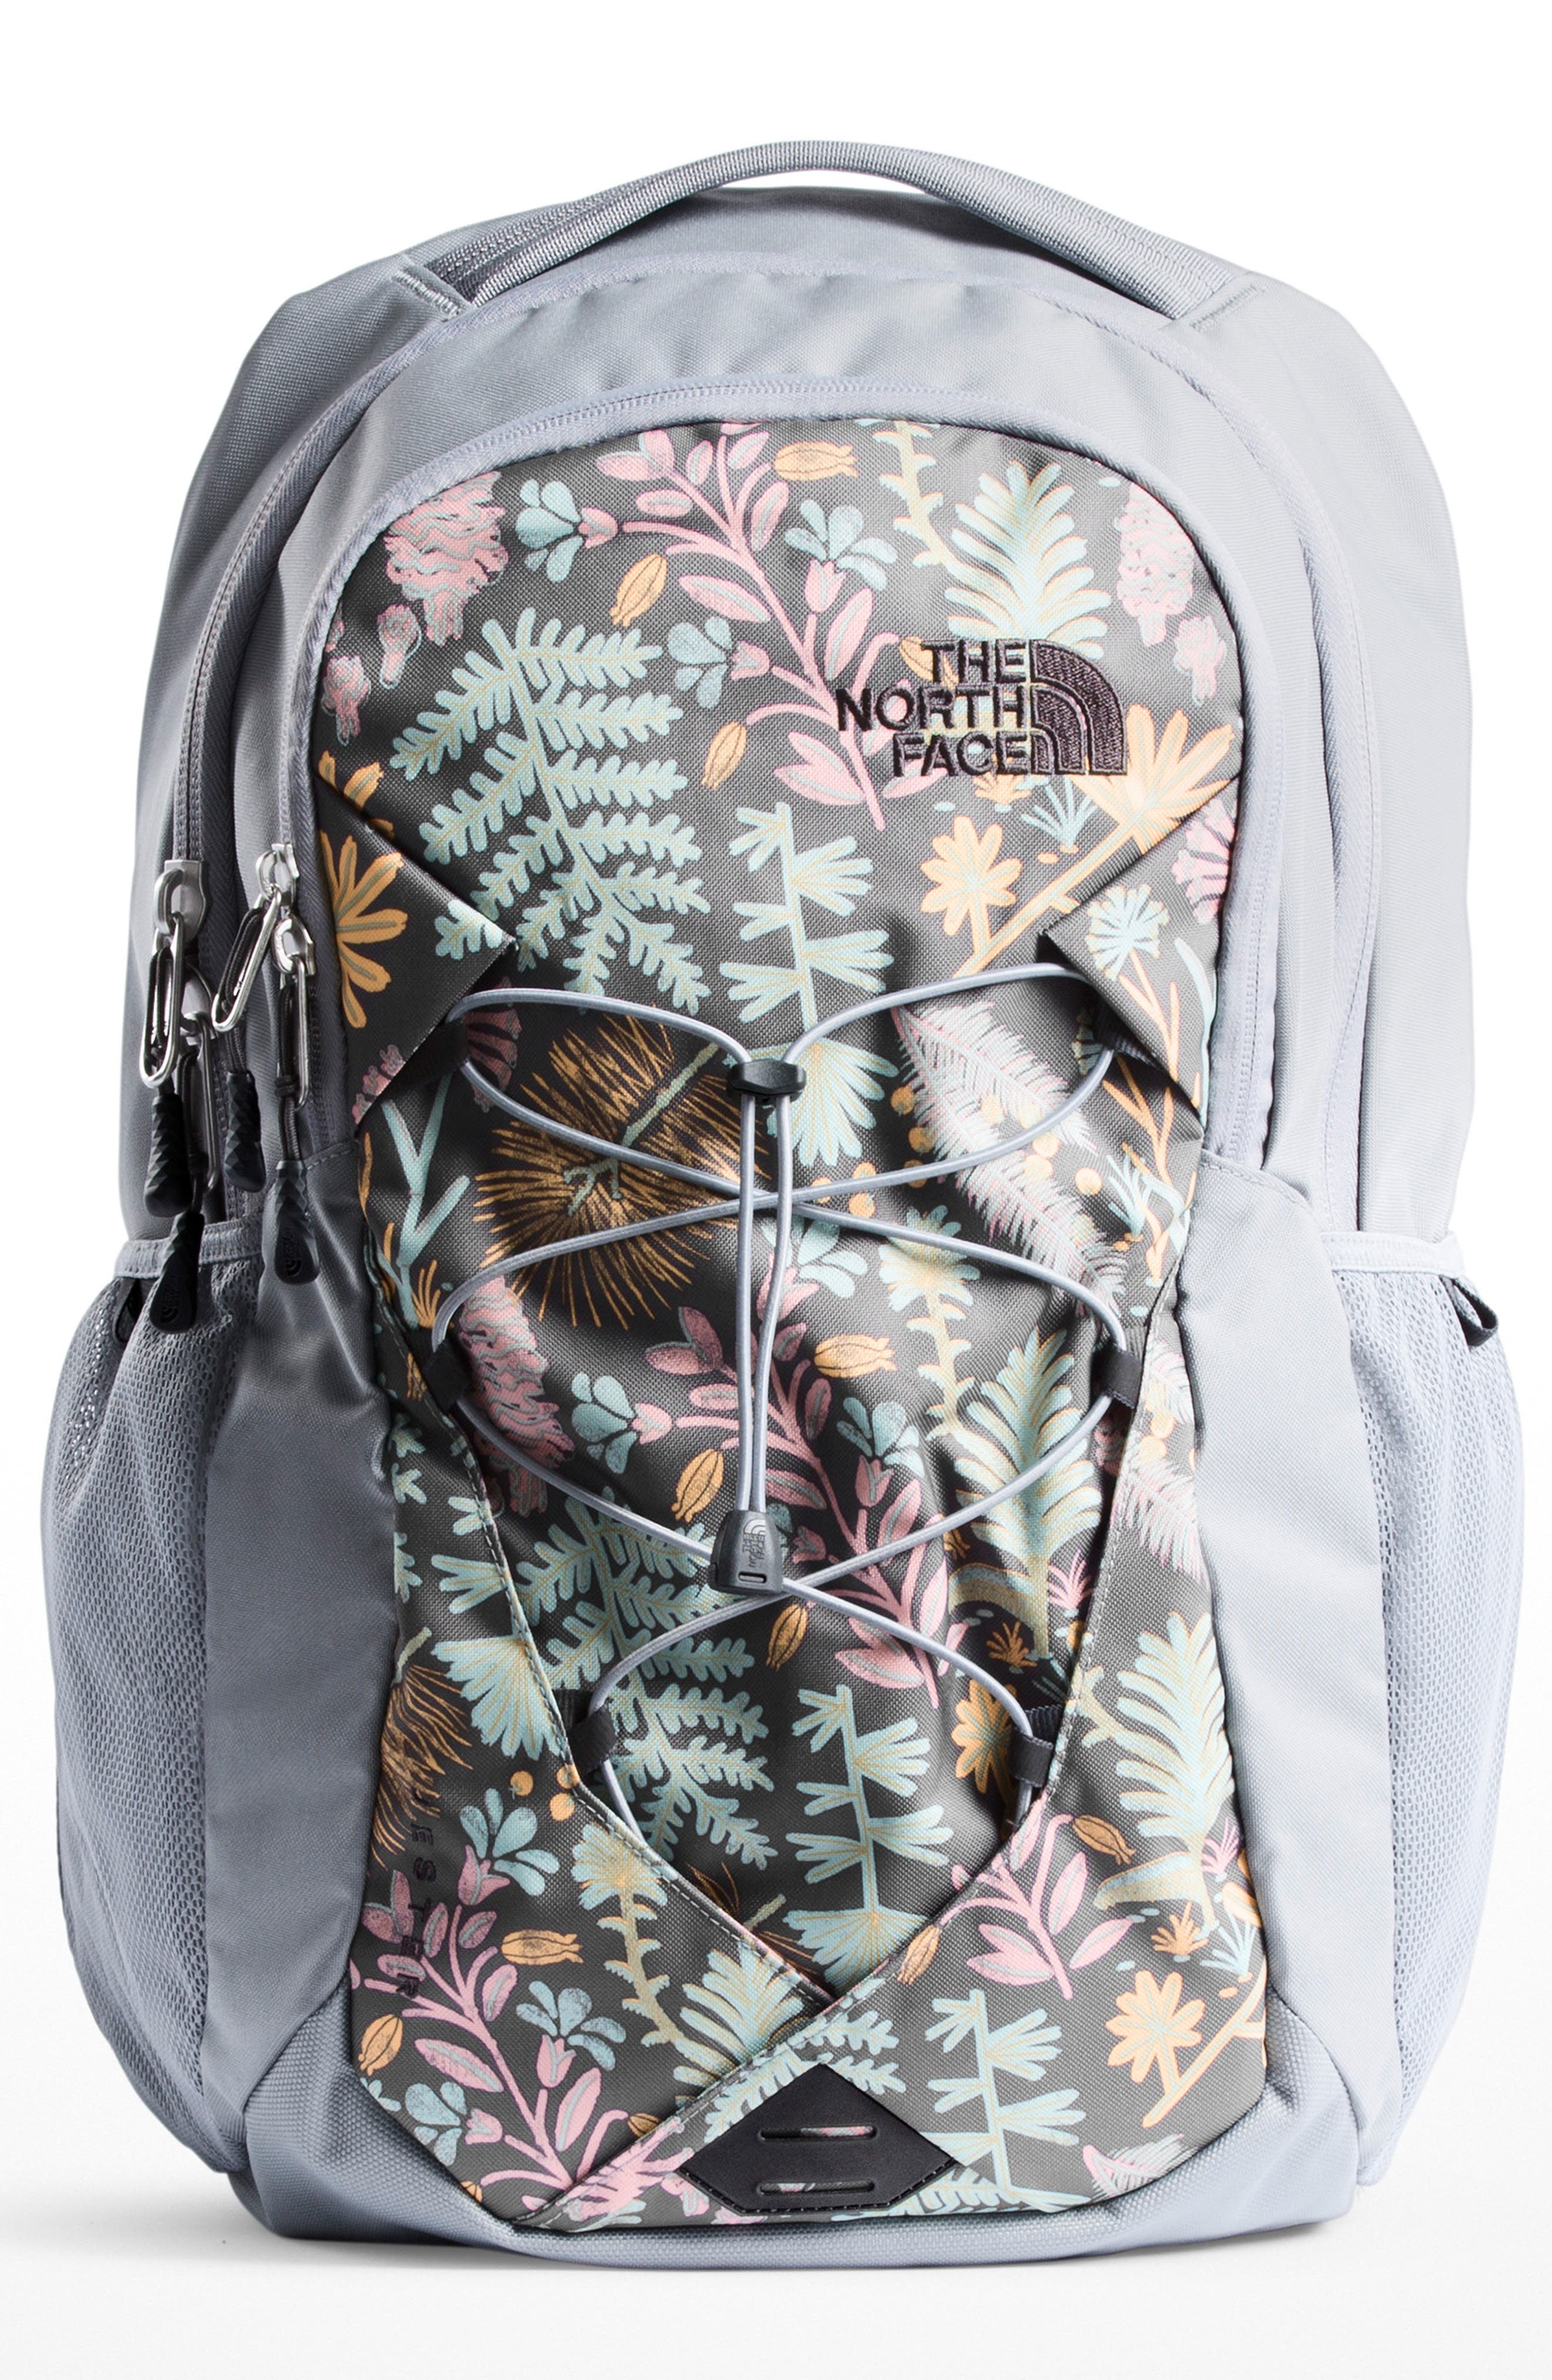 'Jester' Backpack,                             Main thumbnail 1, color,                             GREY FLORAL PRINT/ MID GREY